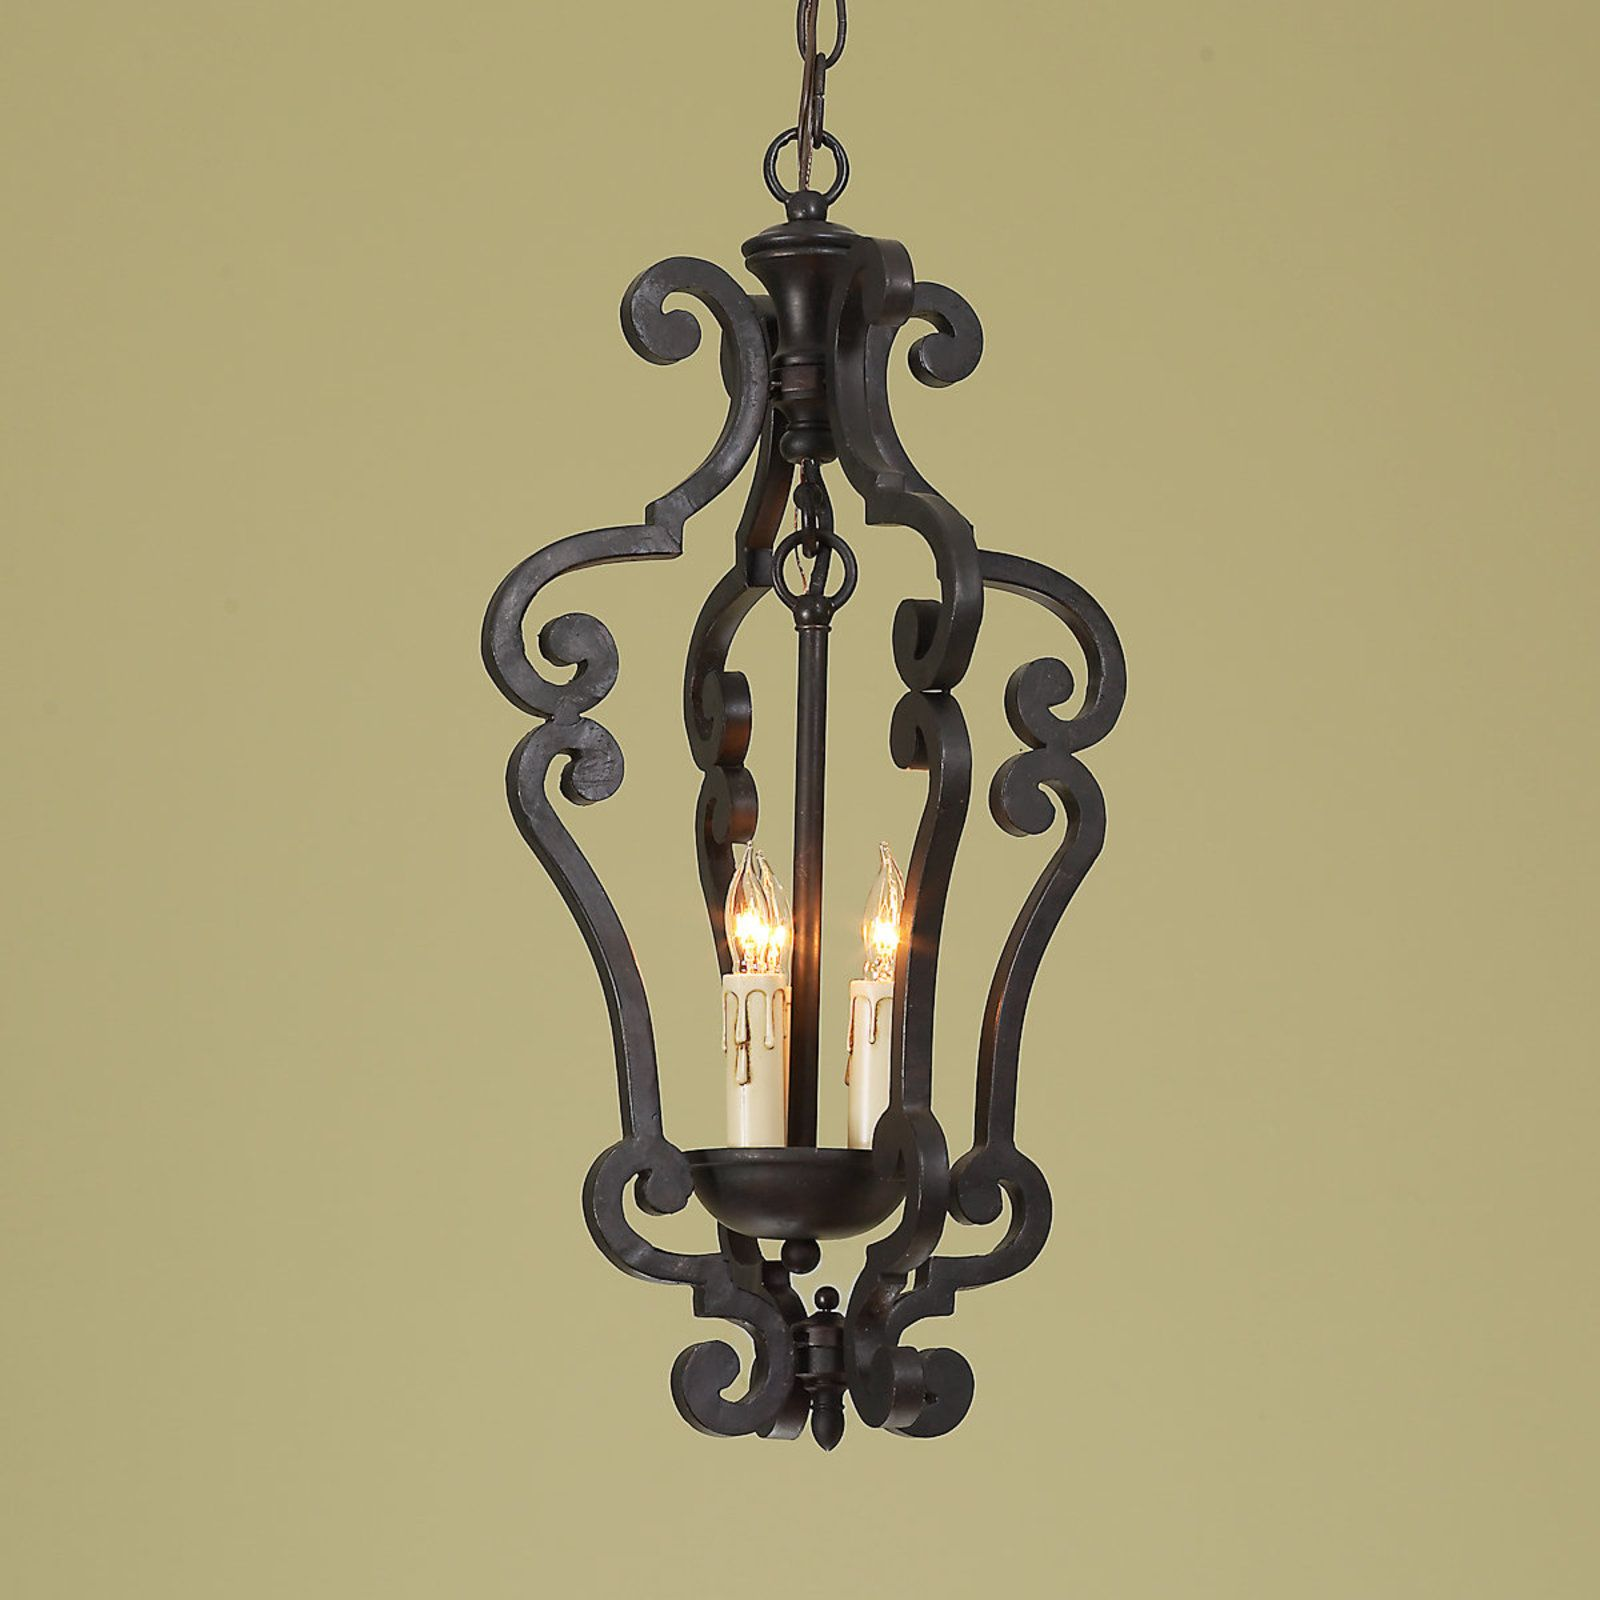 Black Iron Scroll Lantern Small Black Iron Chandeliers Foyer Decorating Iron Lighting